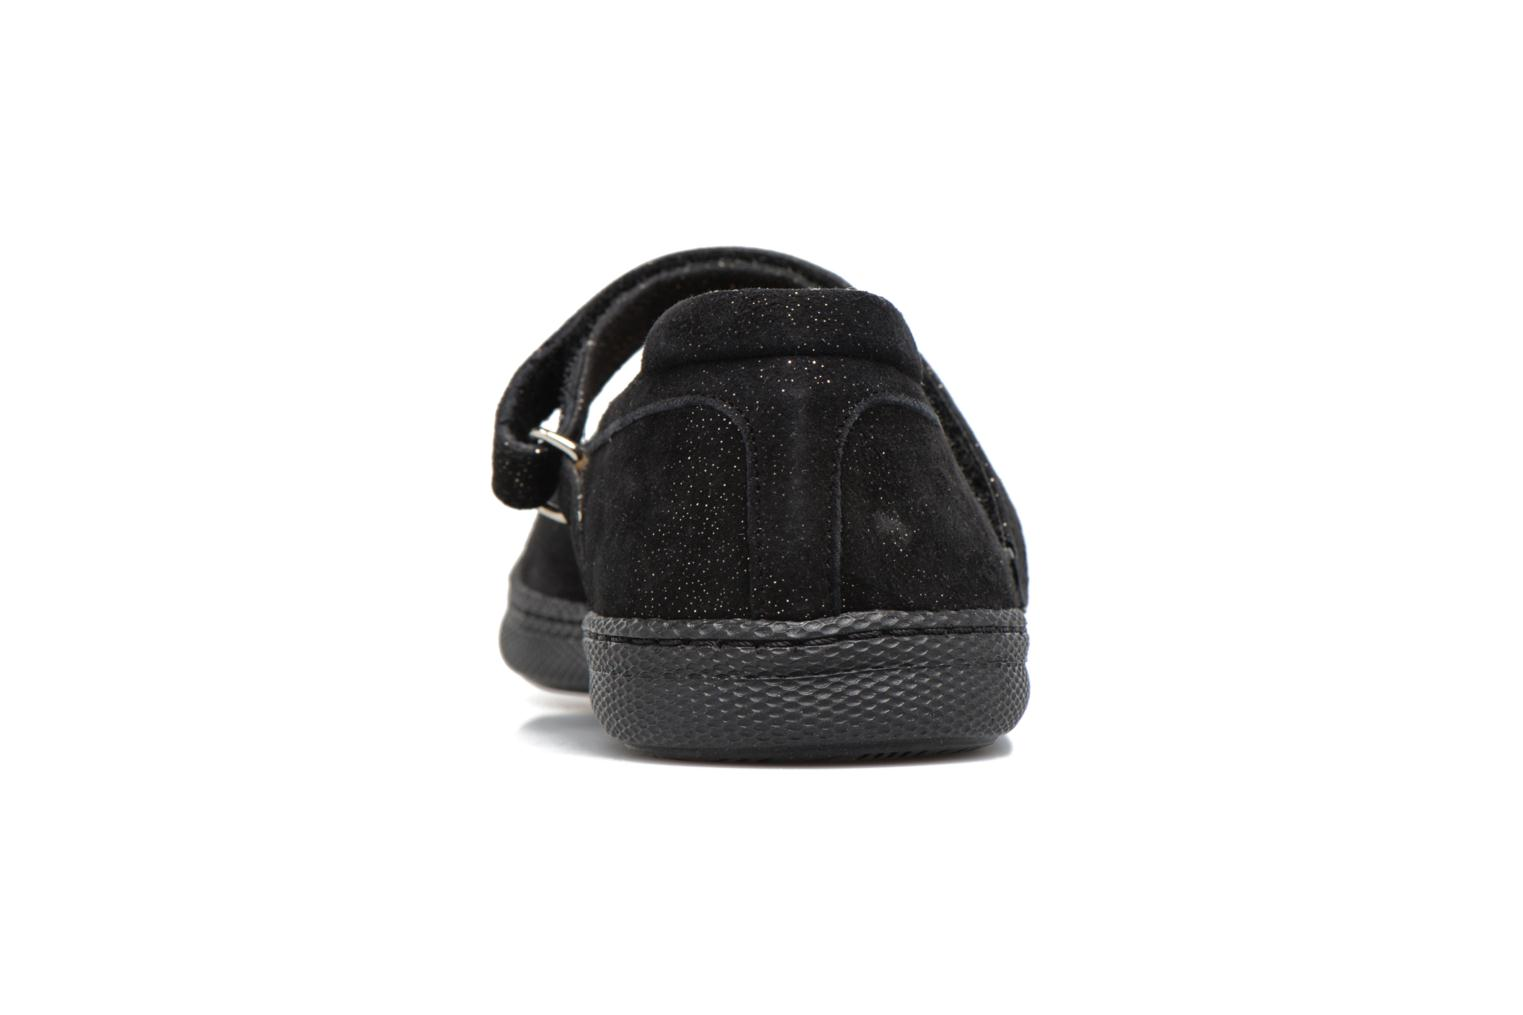 NEW SCHOOL BABY Camurca Black Gold